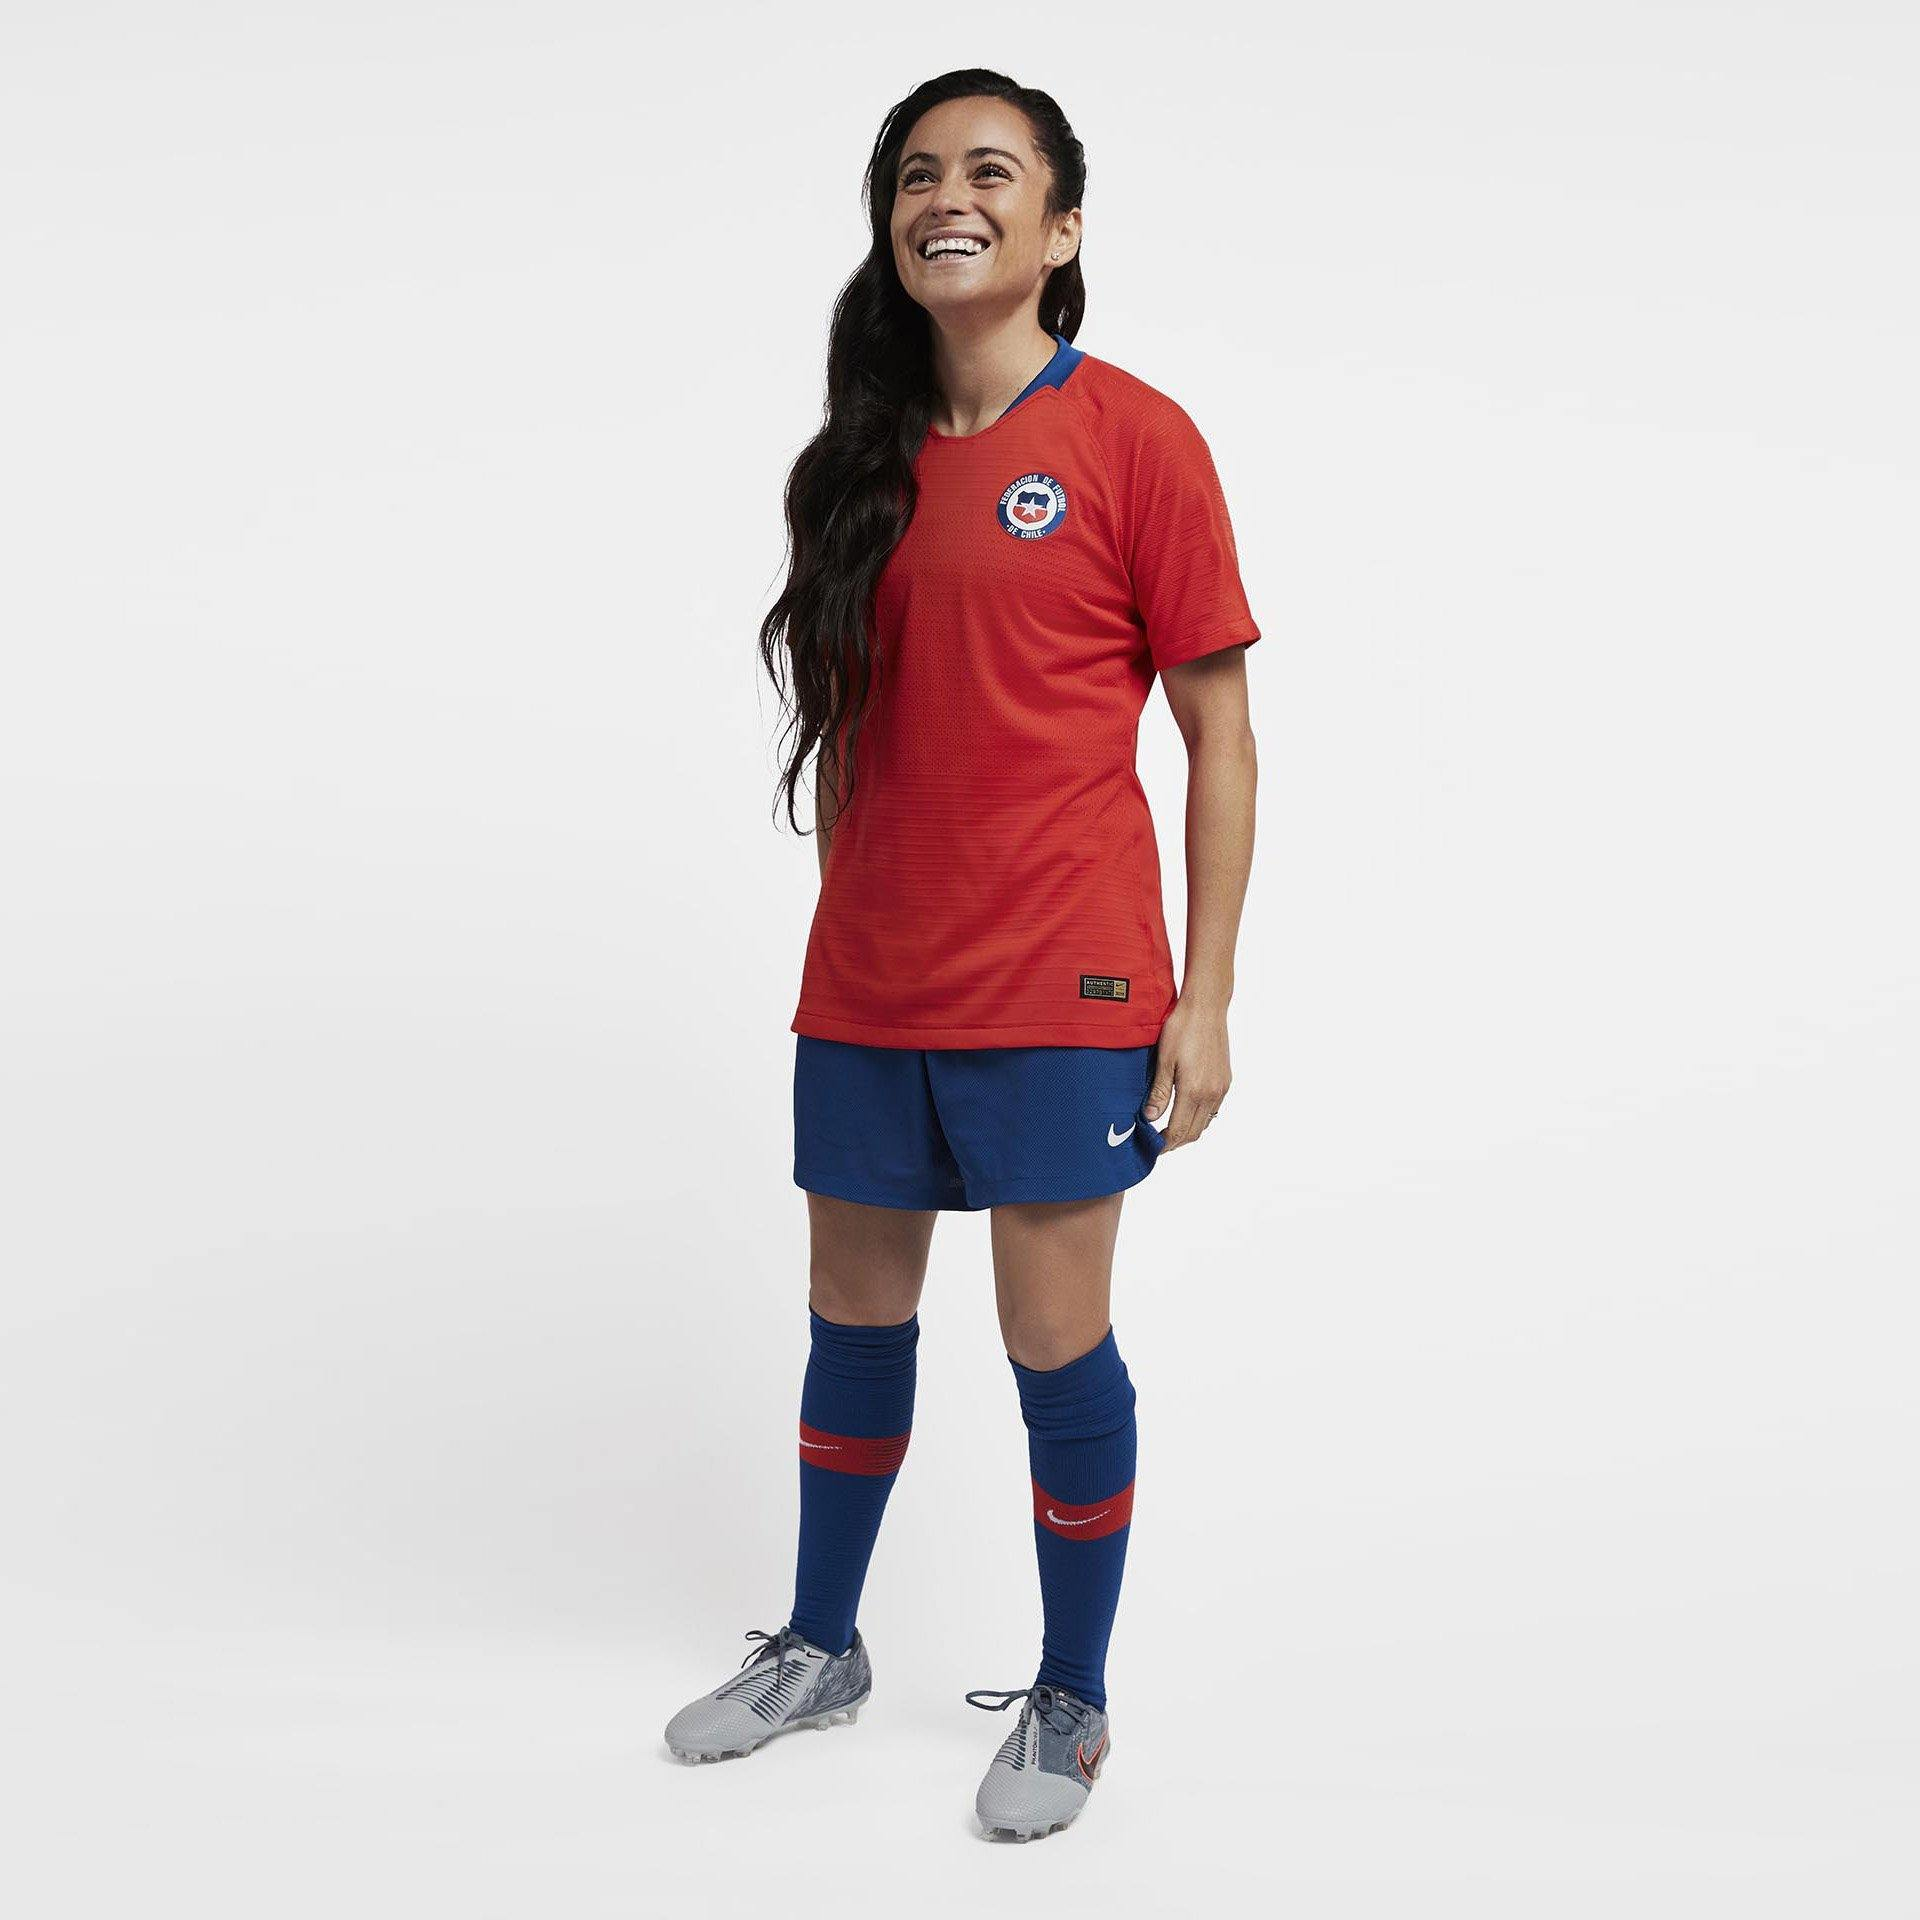 MAILLOT FEMME CHILI 2020 FOOTBALL FOOT COUPE DU MONDE